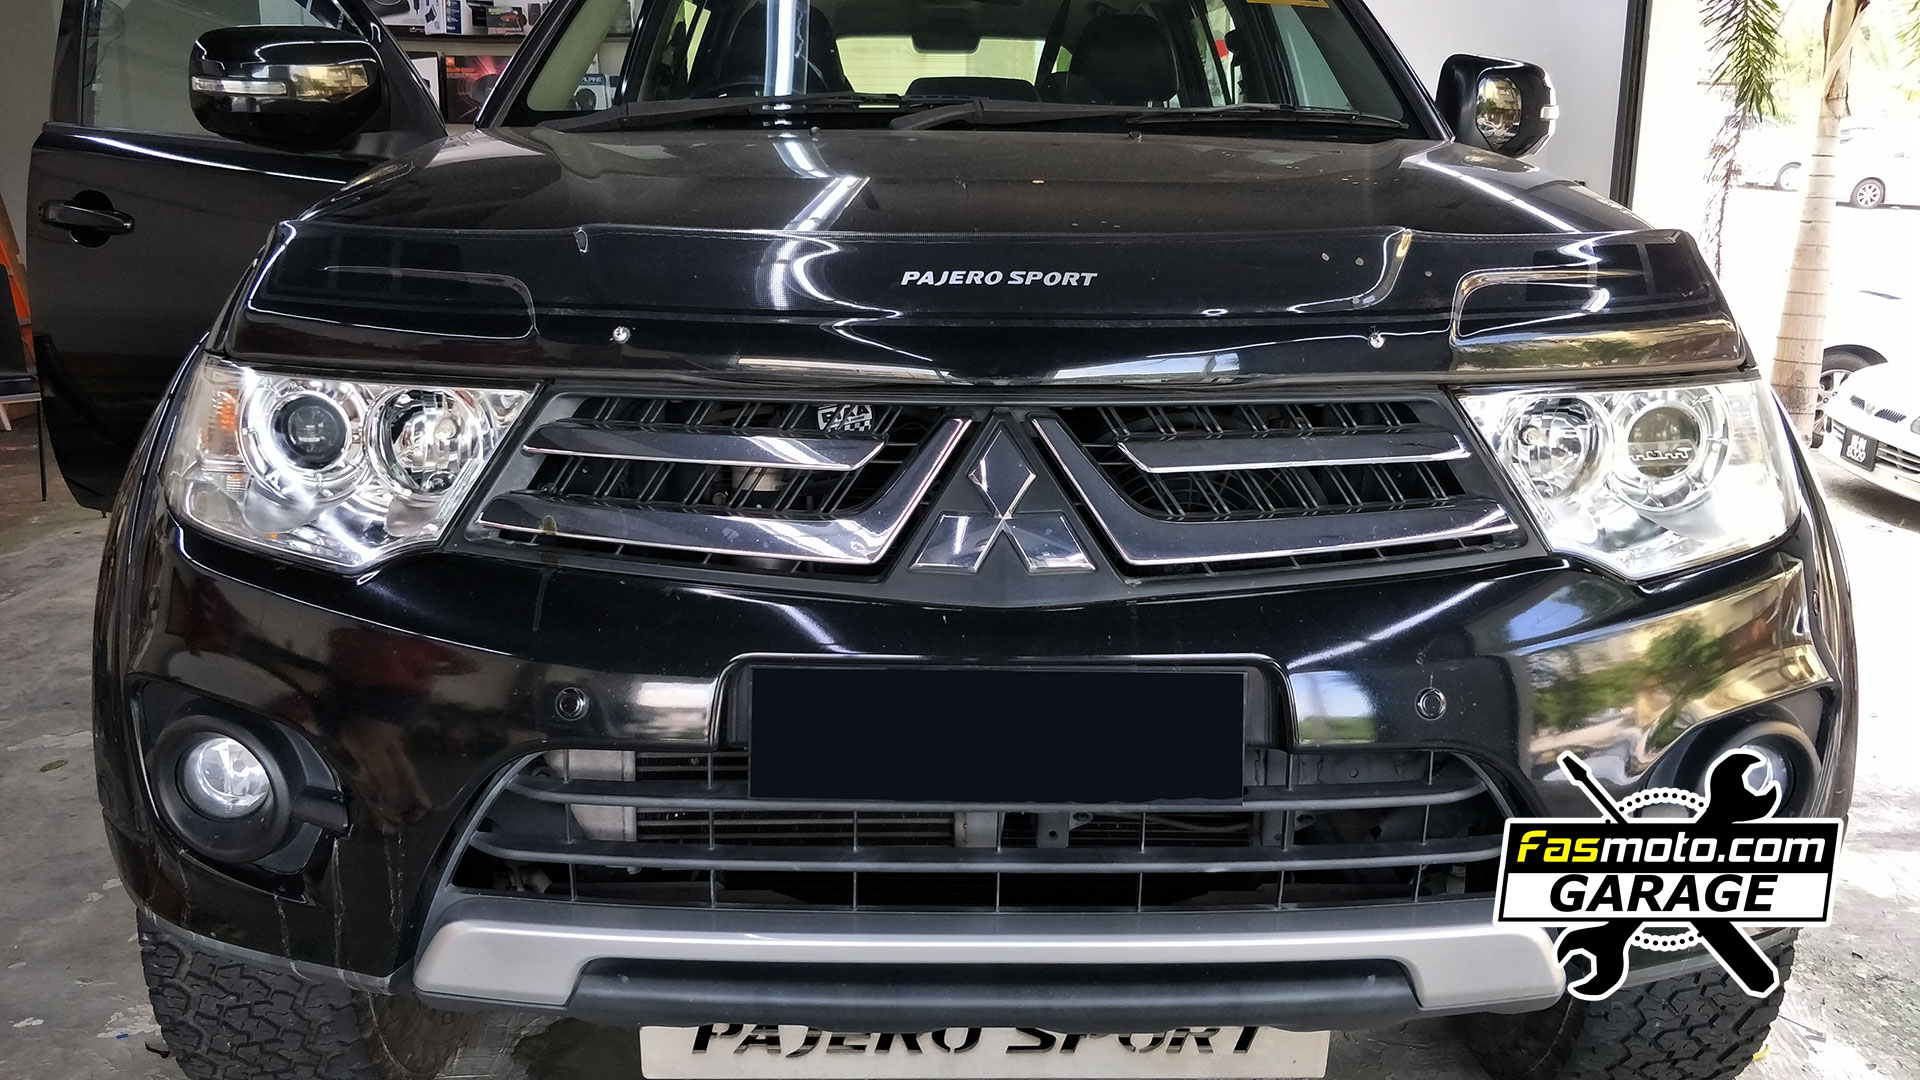 Mitsubishi Pajero Sport Headlamp Restoration (Yellowing, Oxidation, Fogged)